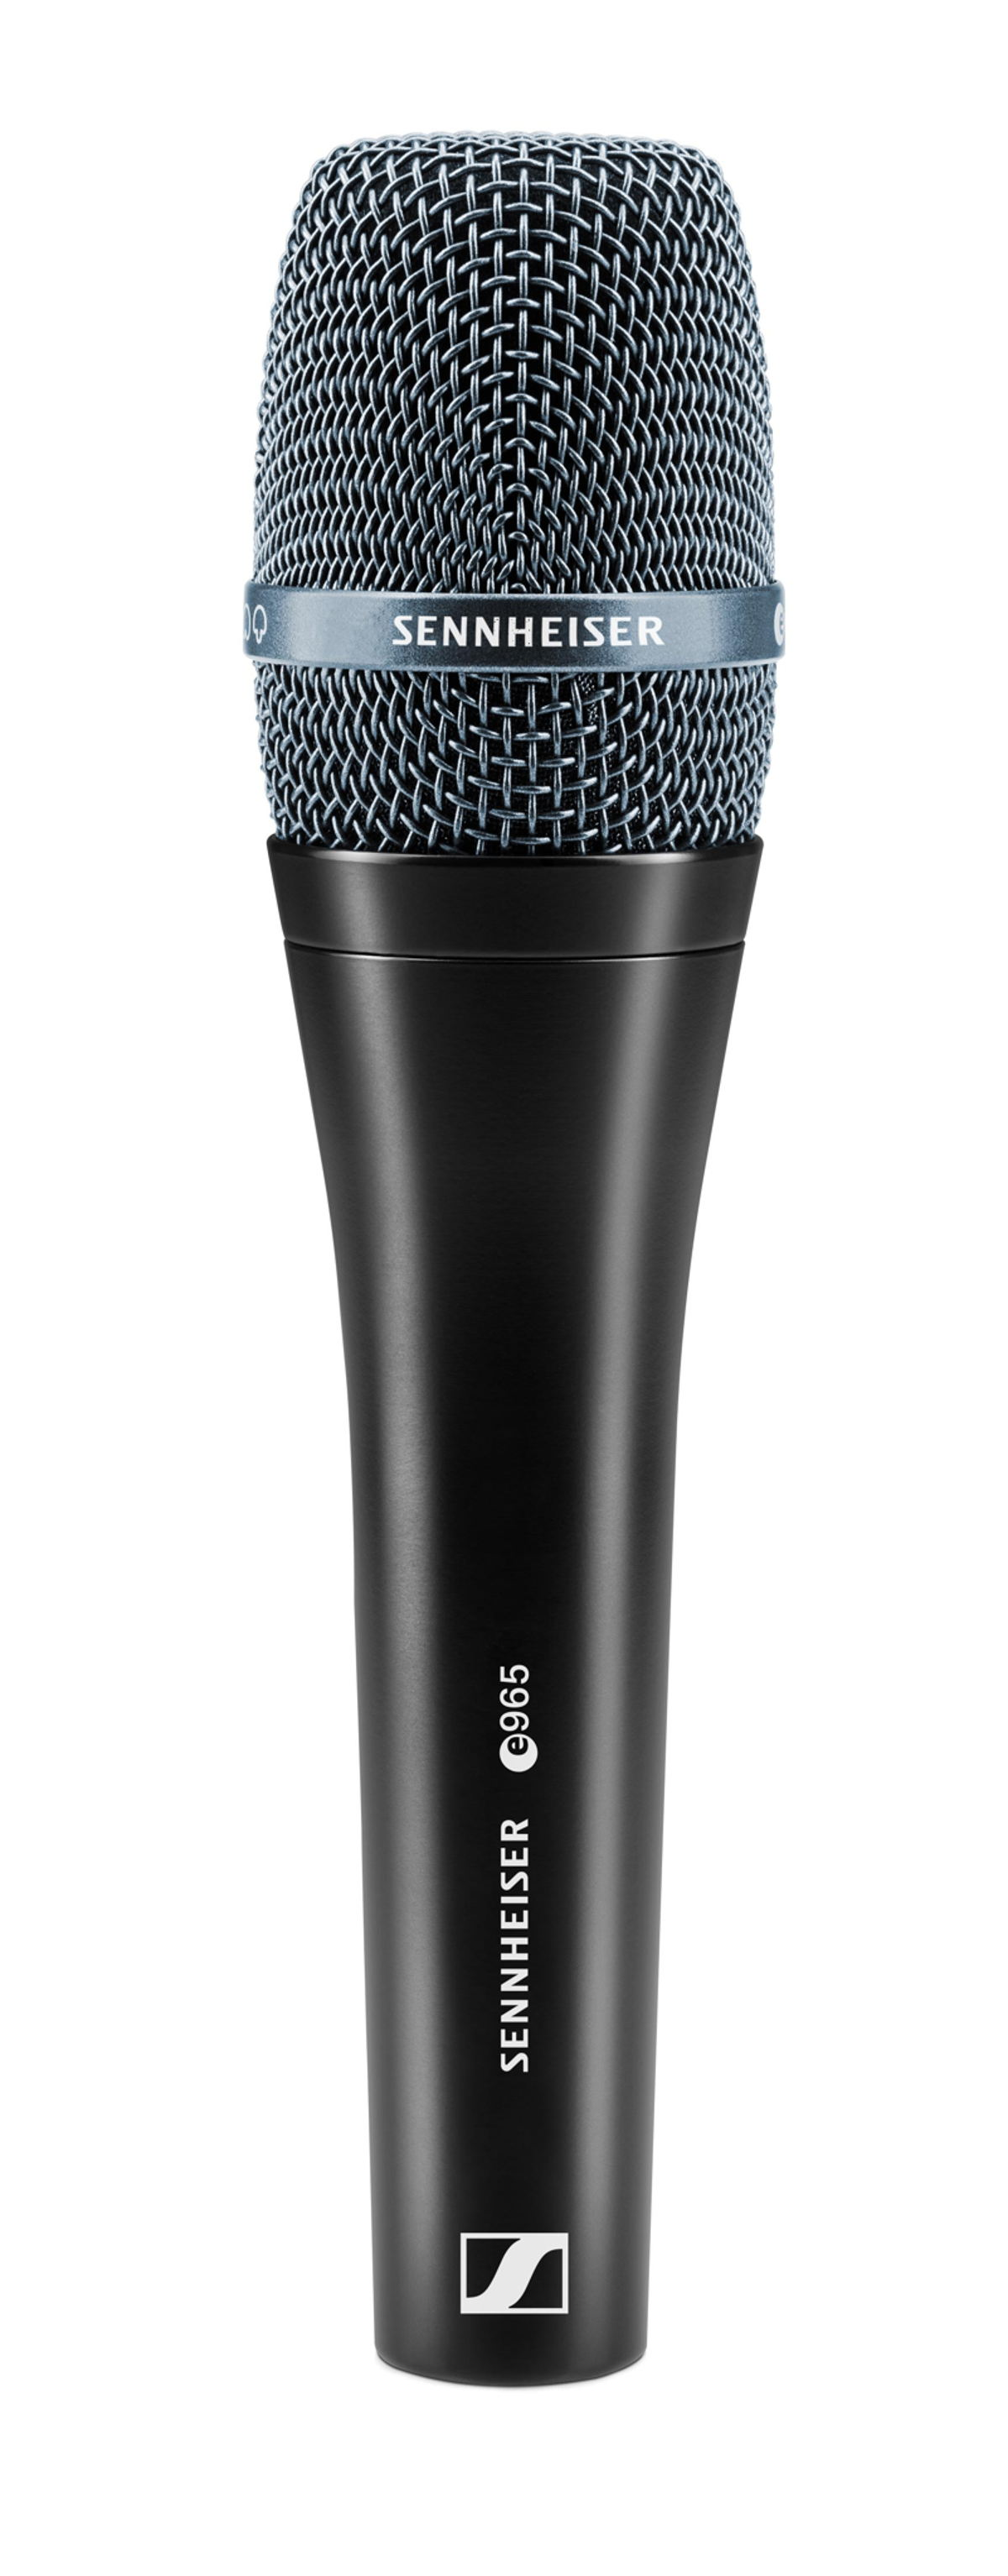 Available as a special offer while stocks last: the e 965 is Sennheiser's anniversary deal for the month of December